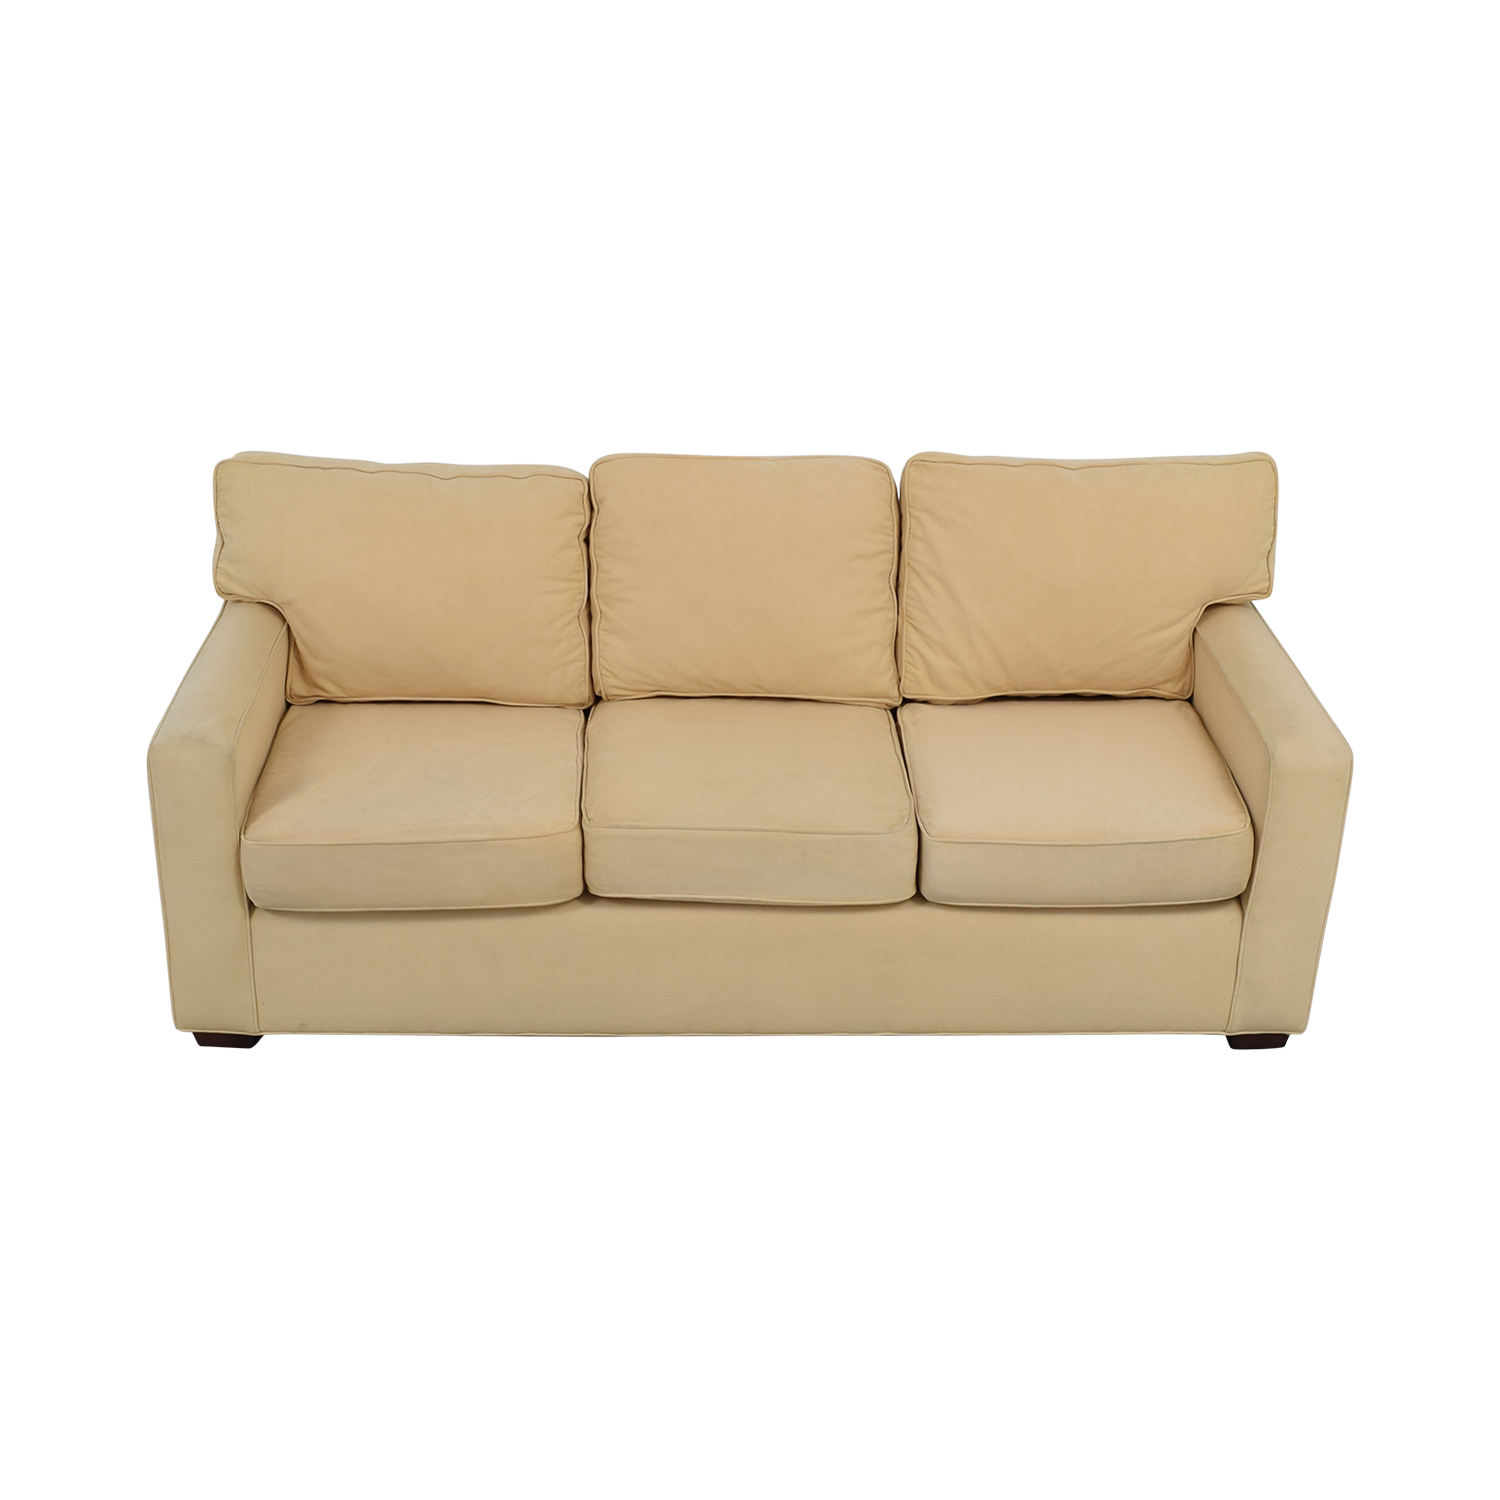 buy Pottery Barn Pottery Barn Tan Three-Cushion Sofa online